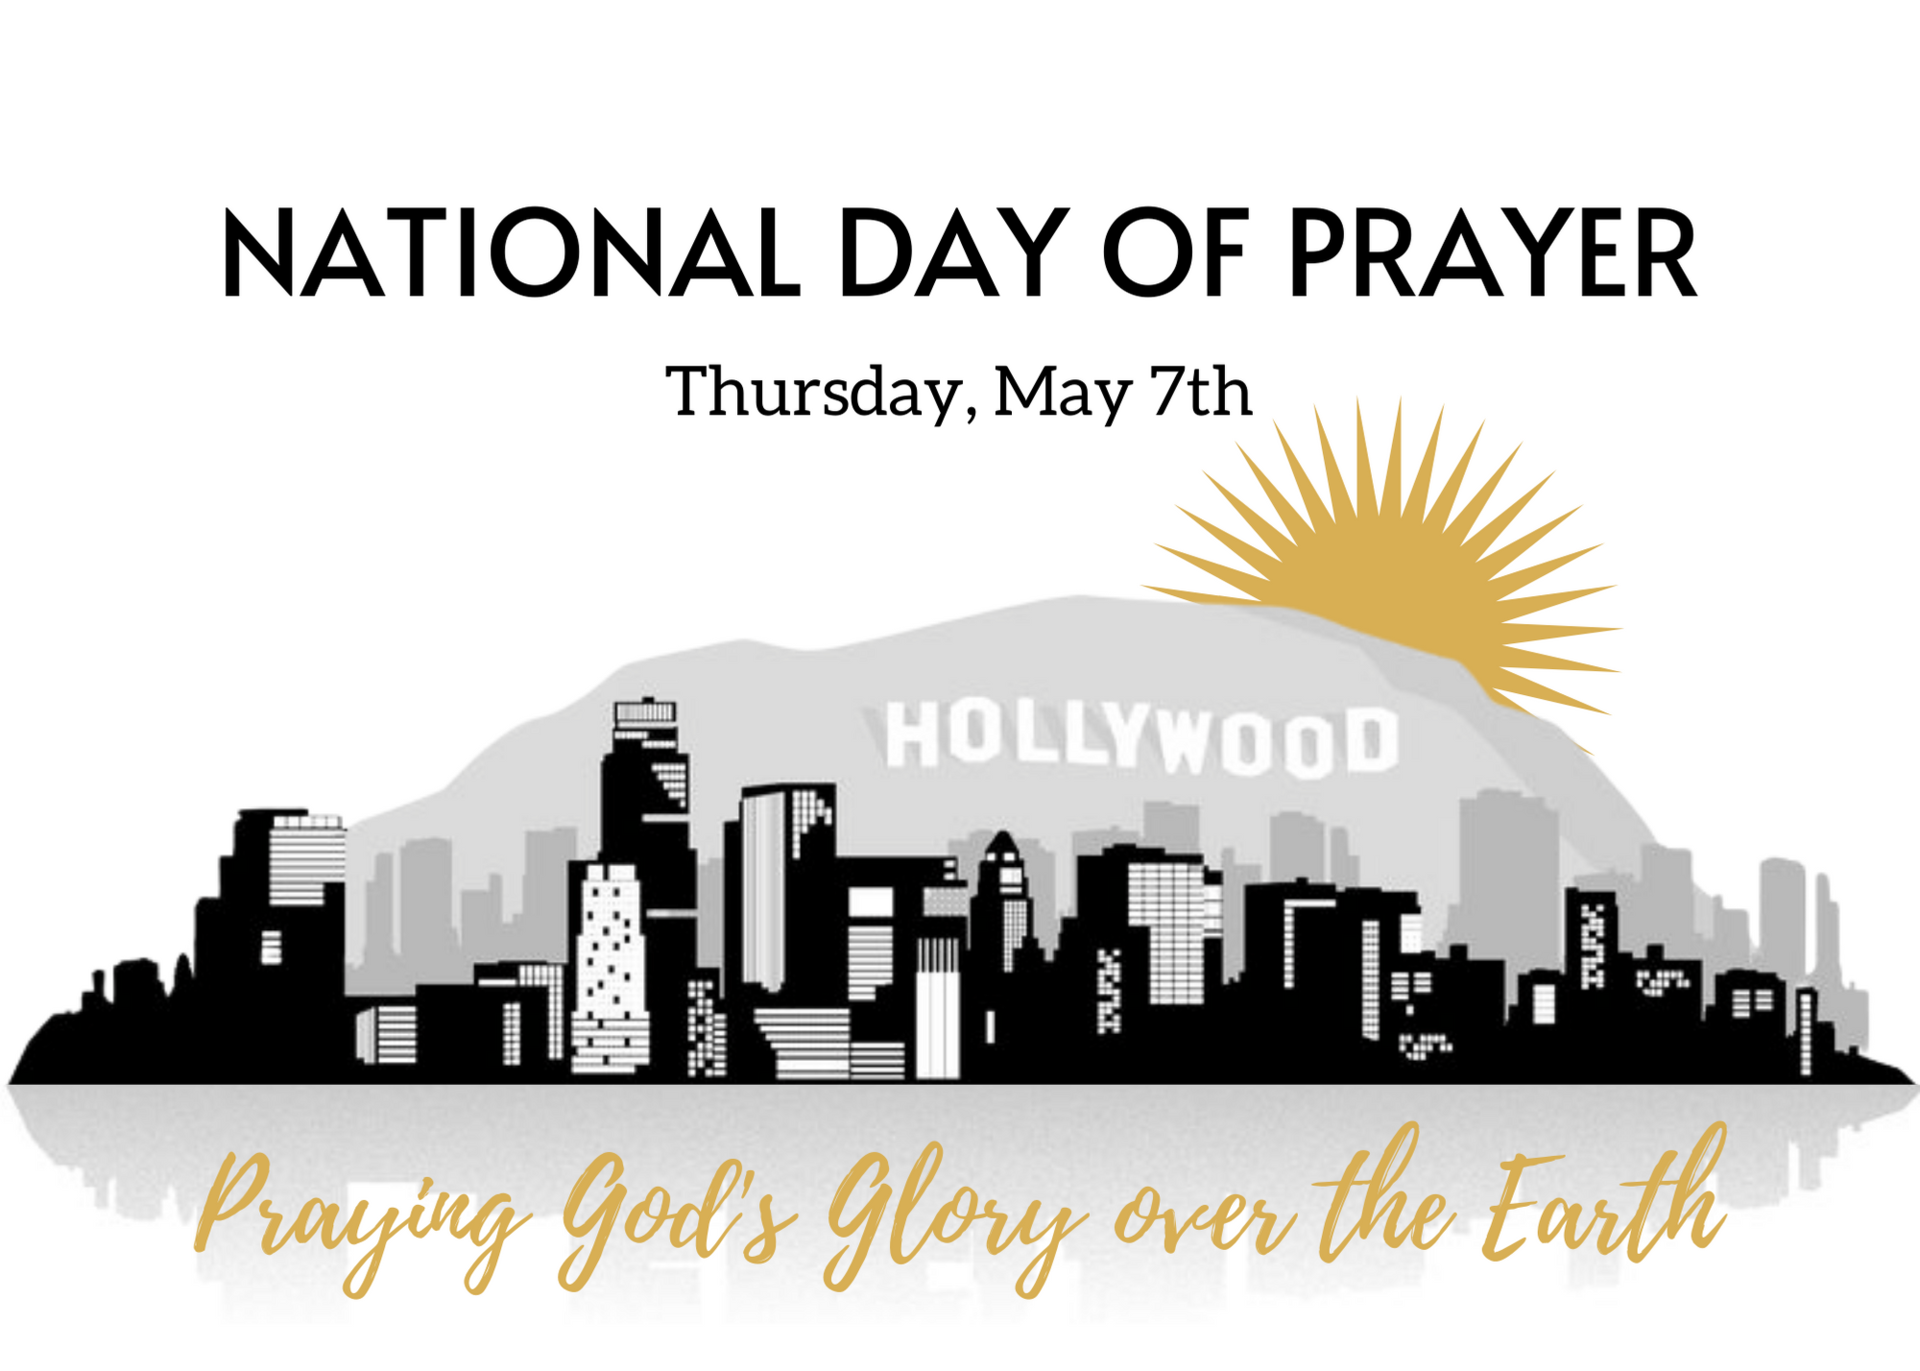 National Day of Prayer Thursday May 7 Praying God's Glory over the Earth